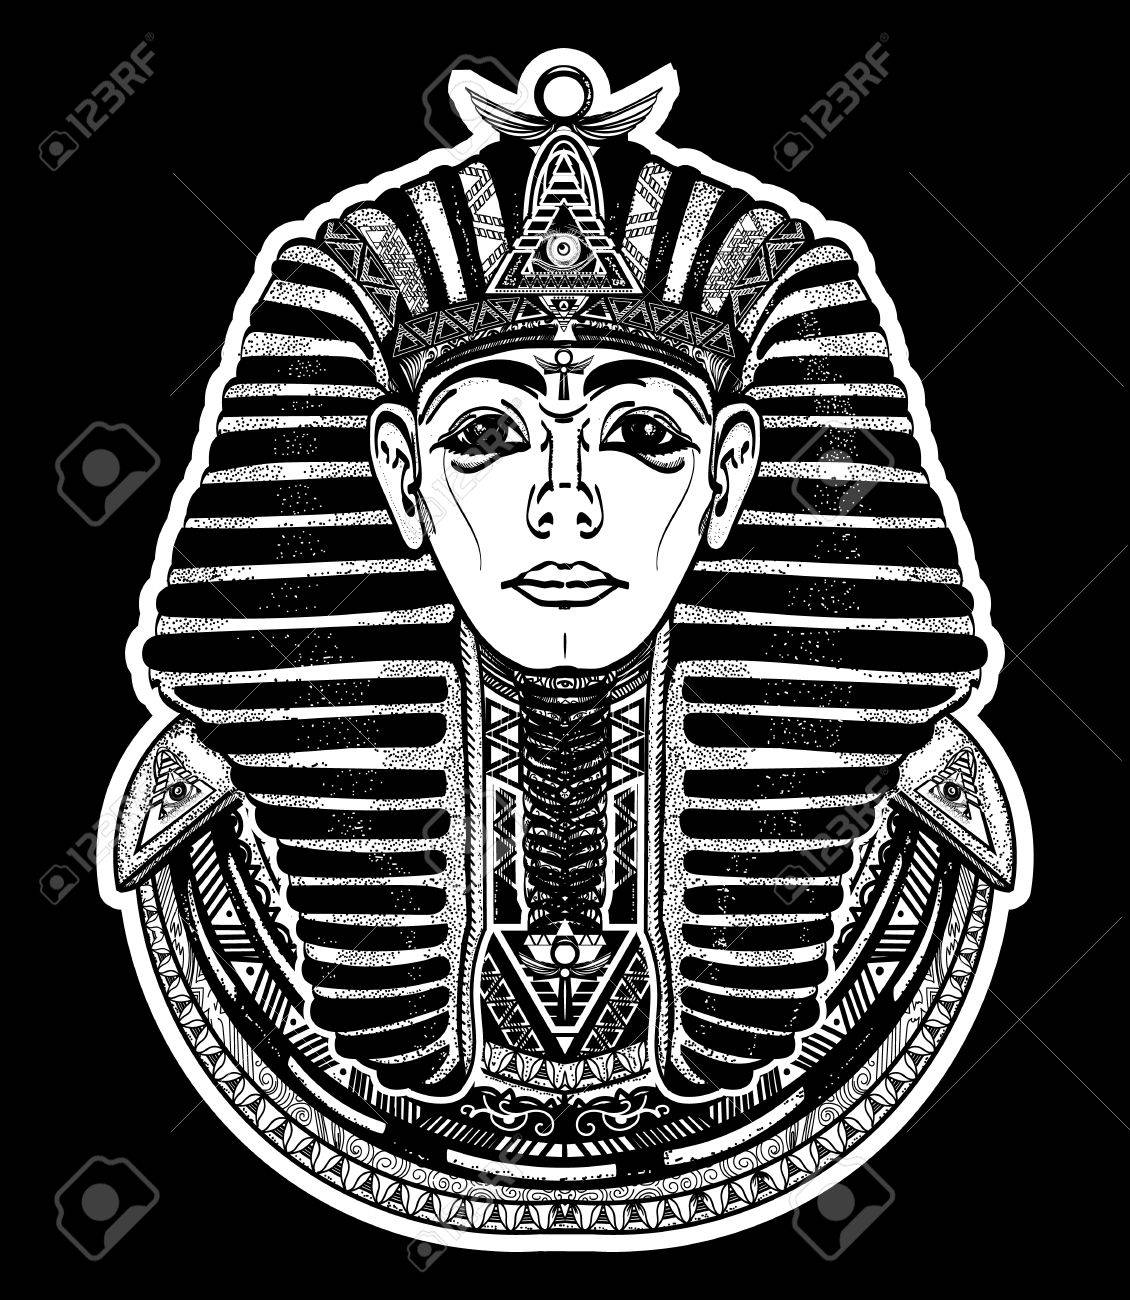 Pharao Tattoo-Kunst, Ägypten Pharao Grafik, T-Shirt-Design. Großer ...